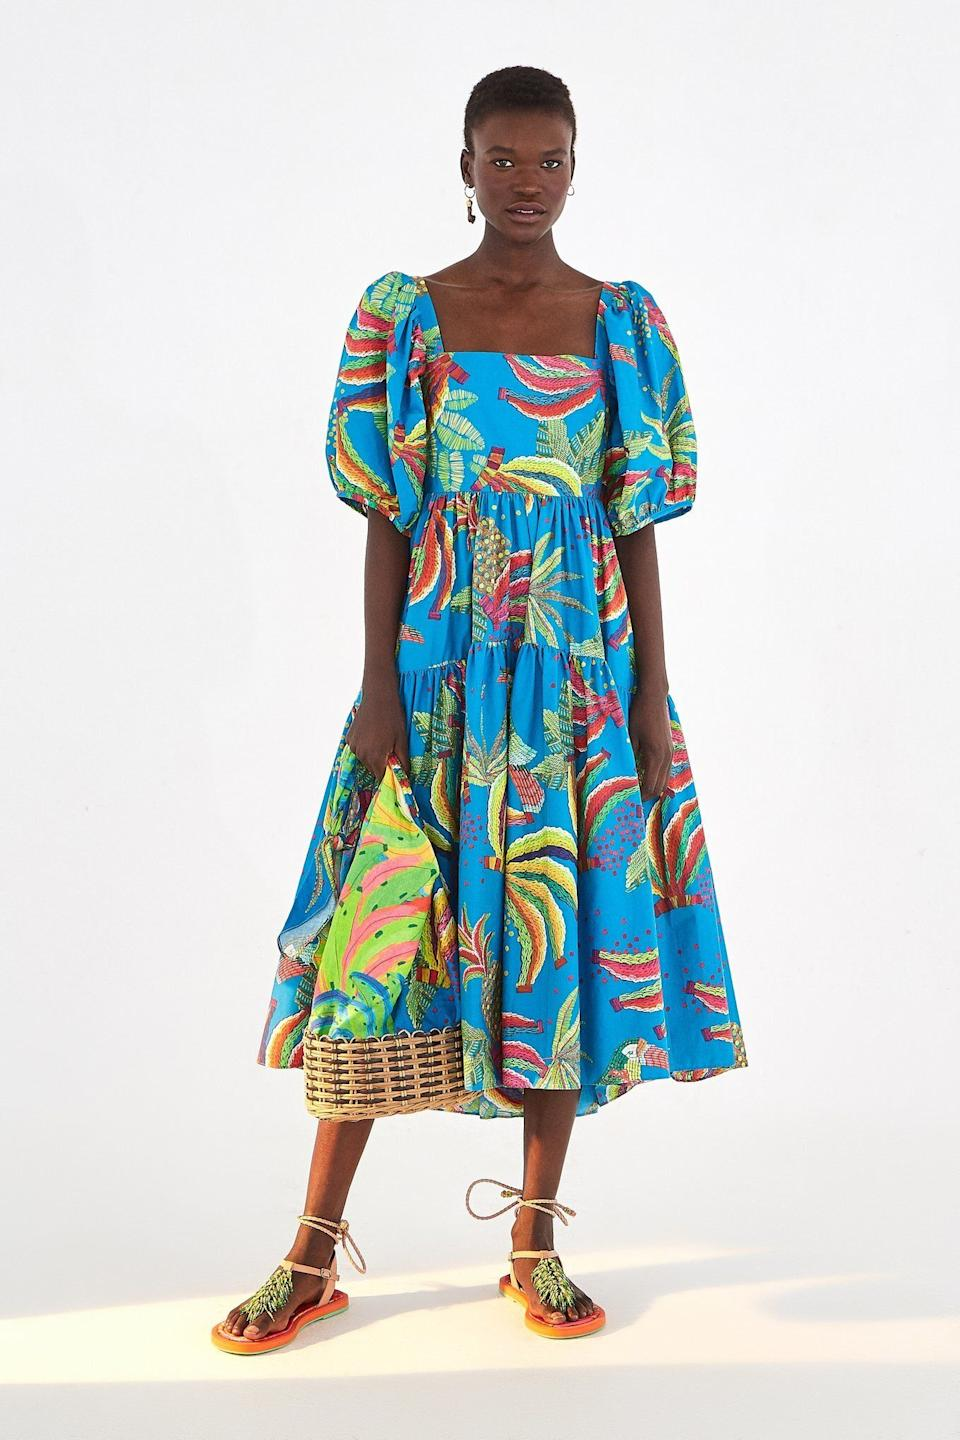 """<a href=""""https://fave.co/2yX7M9b"""" target=""""_blank"""" rel=""""noopener noreferrer"""">Farm Rio</a> is Brazilian fashion retailer that carries bright prints and bold silhouettes. It also plants a tree in the Amazon for every purchase made. The brand was founded by Katia Barros, who wanted to launch a clothing collection thatembodies the feminine spirit and vibrant colors of Rio. Shop Farm Rio at <a href=""""https://fave.co/2yX7M9b"""" target=""""_blank"""" rel=""""noopener noreferrer"""">Farm Rio</a> and <a href=""""https://fave.co/2ZAWTnZ"""" target=""""_blank"""" rel=""""noopener noreferrer"""">Shopbop</a>."""